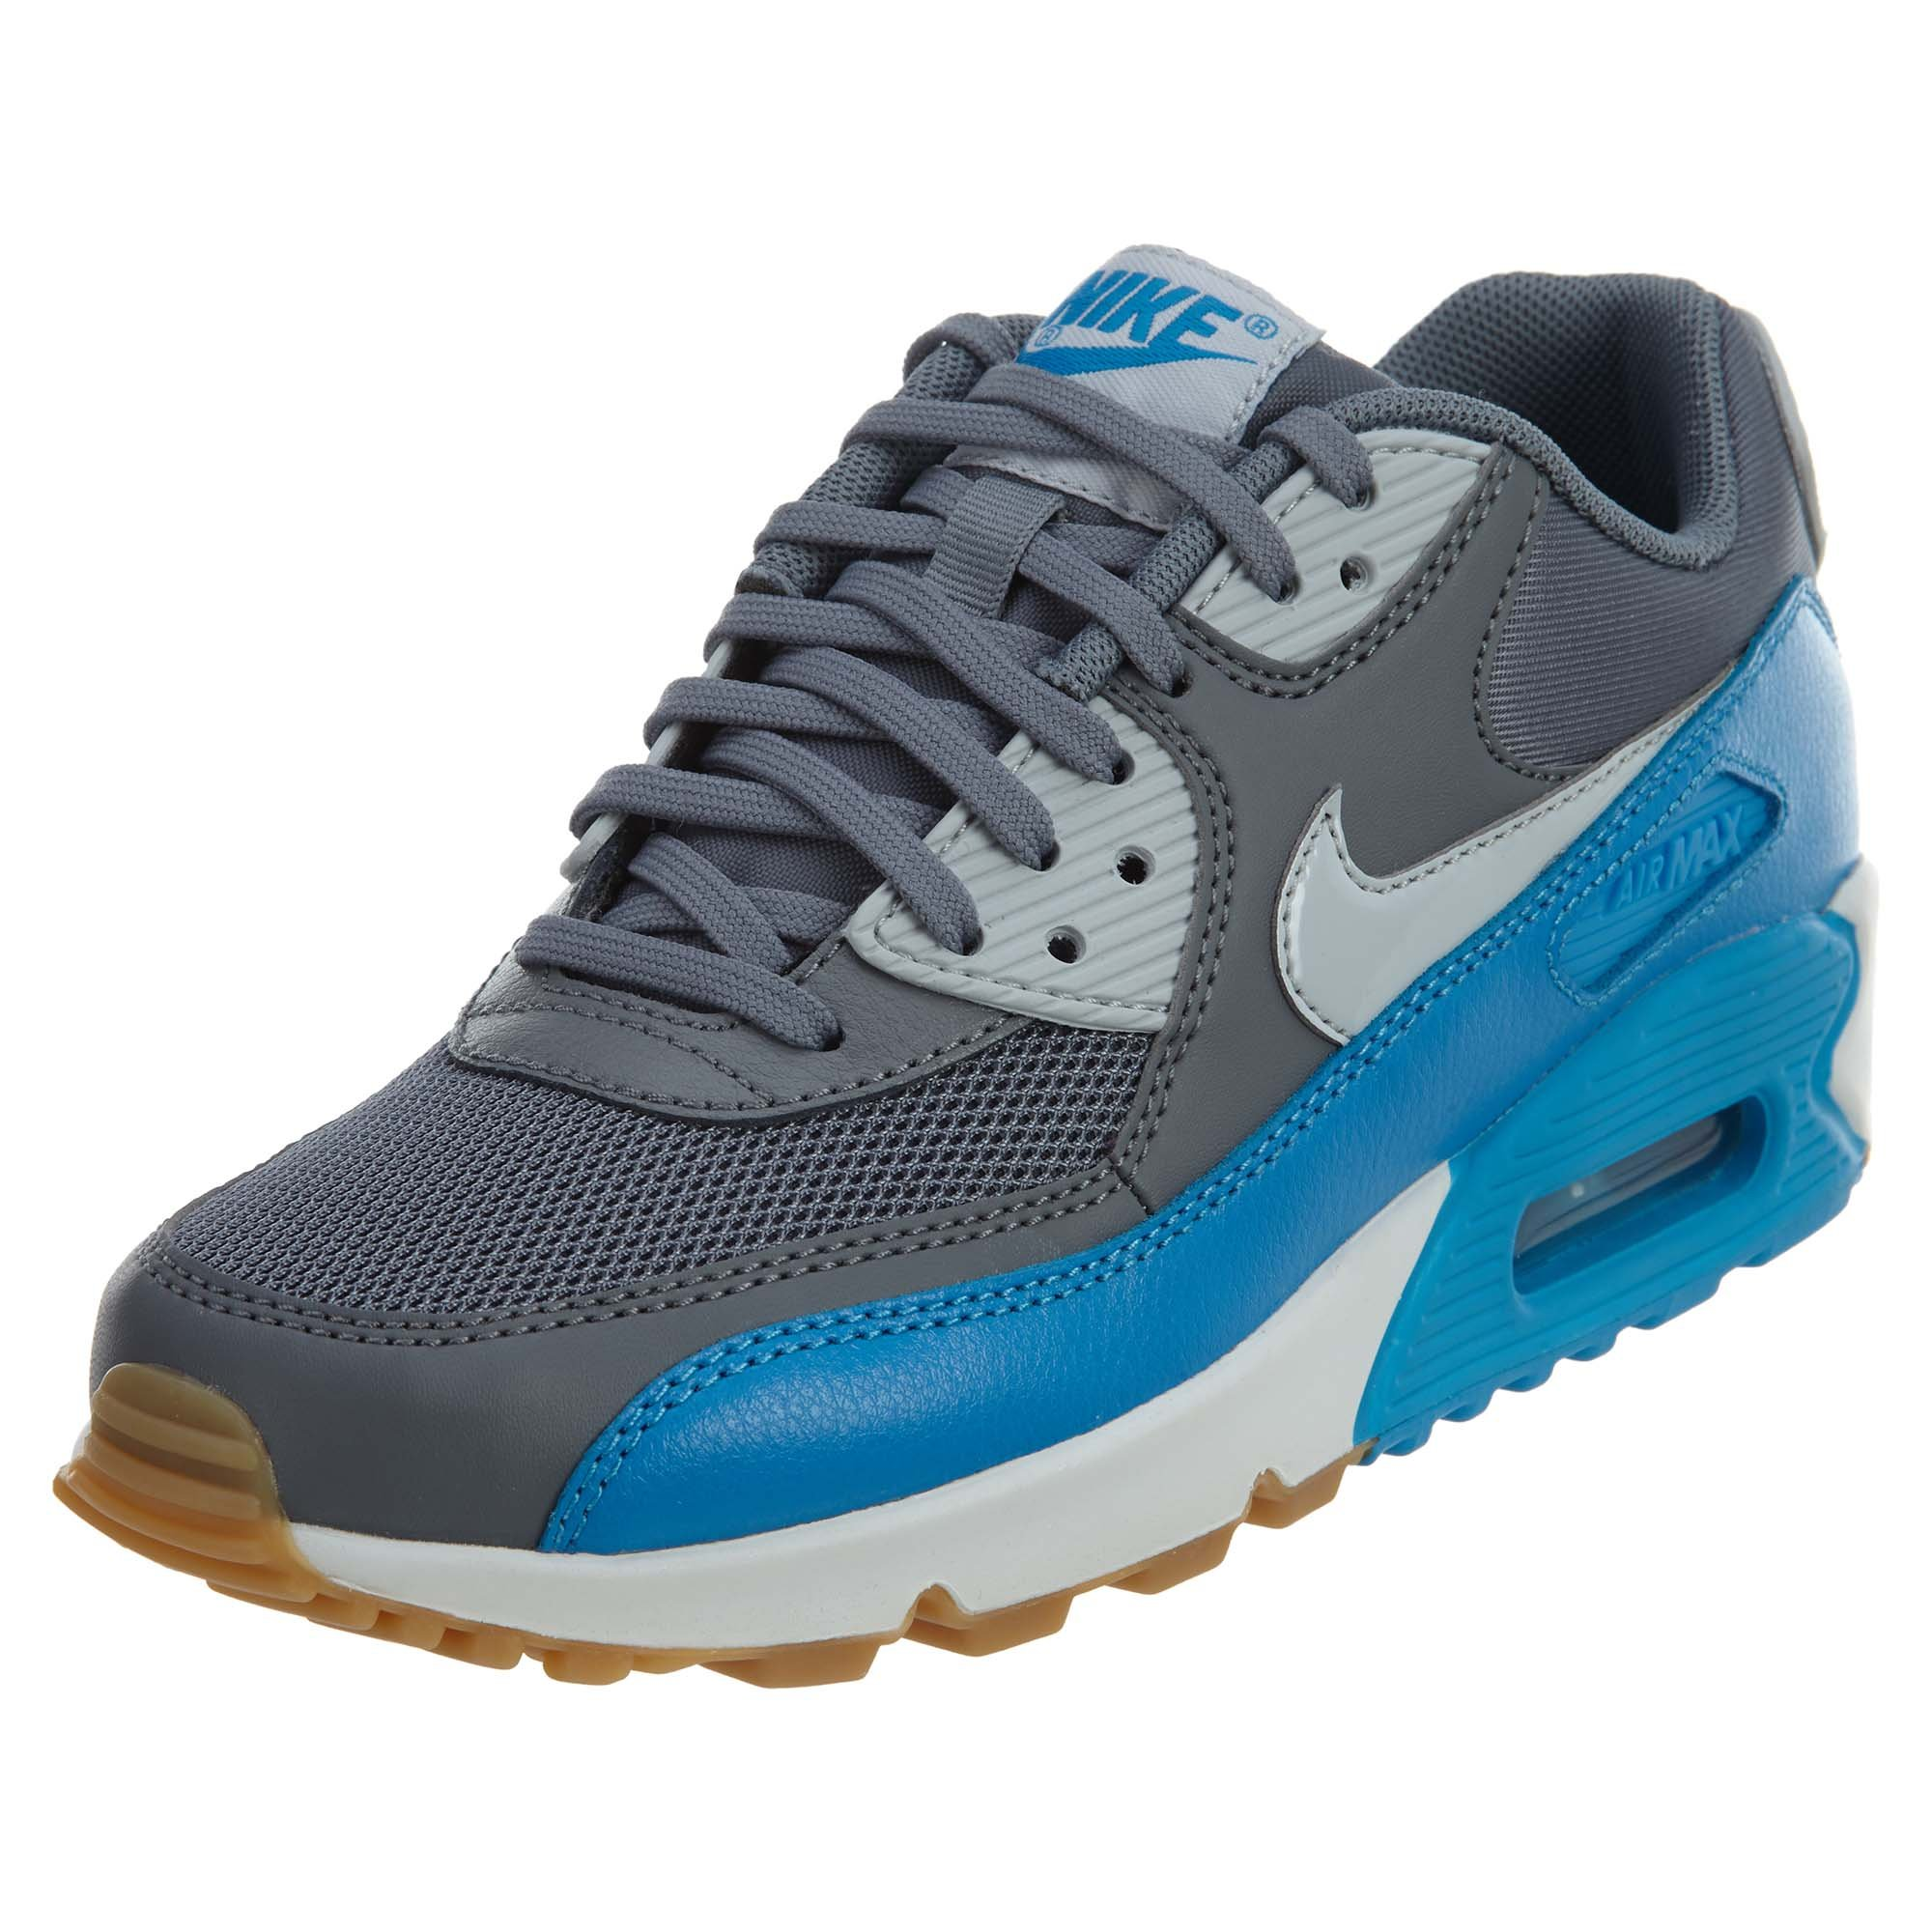 Nike Air Max 90 Essential Womens Style: 616730-031 Size: 6.5 M US